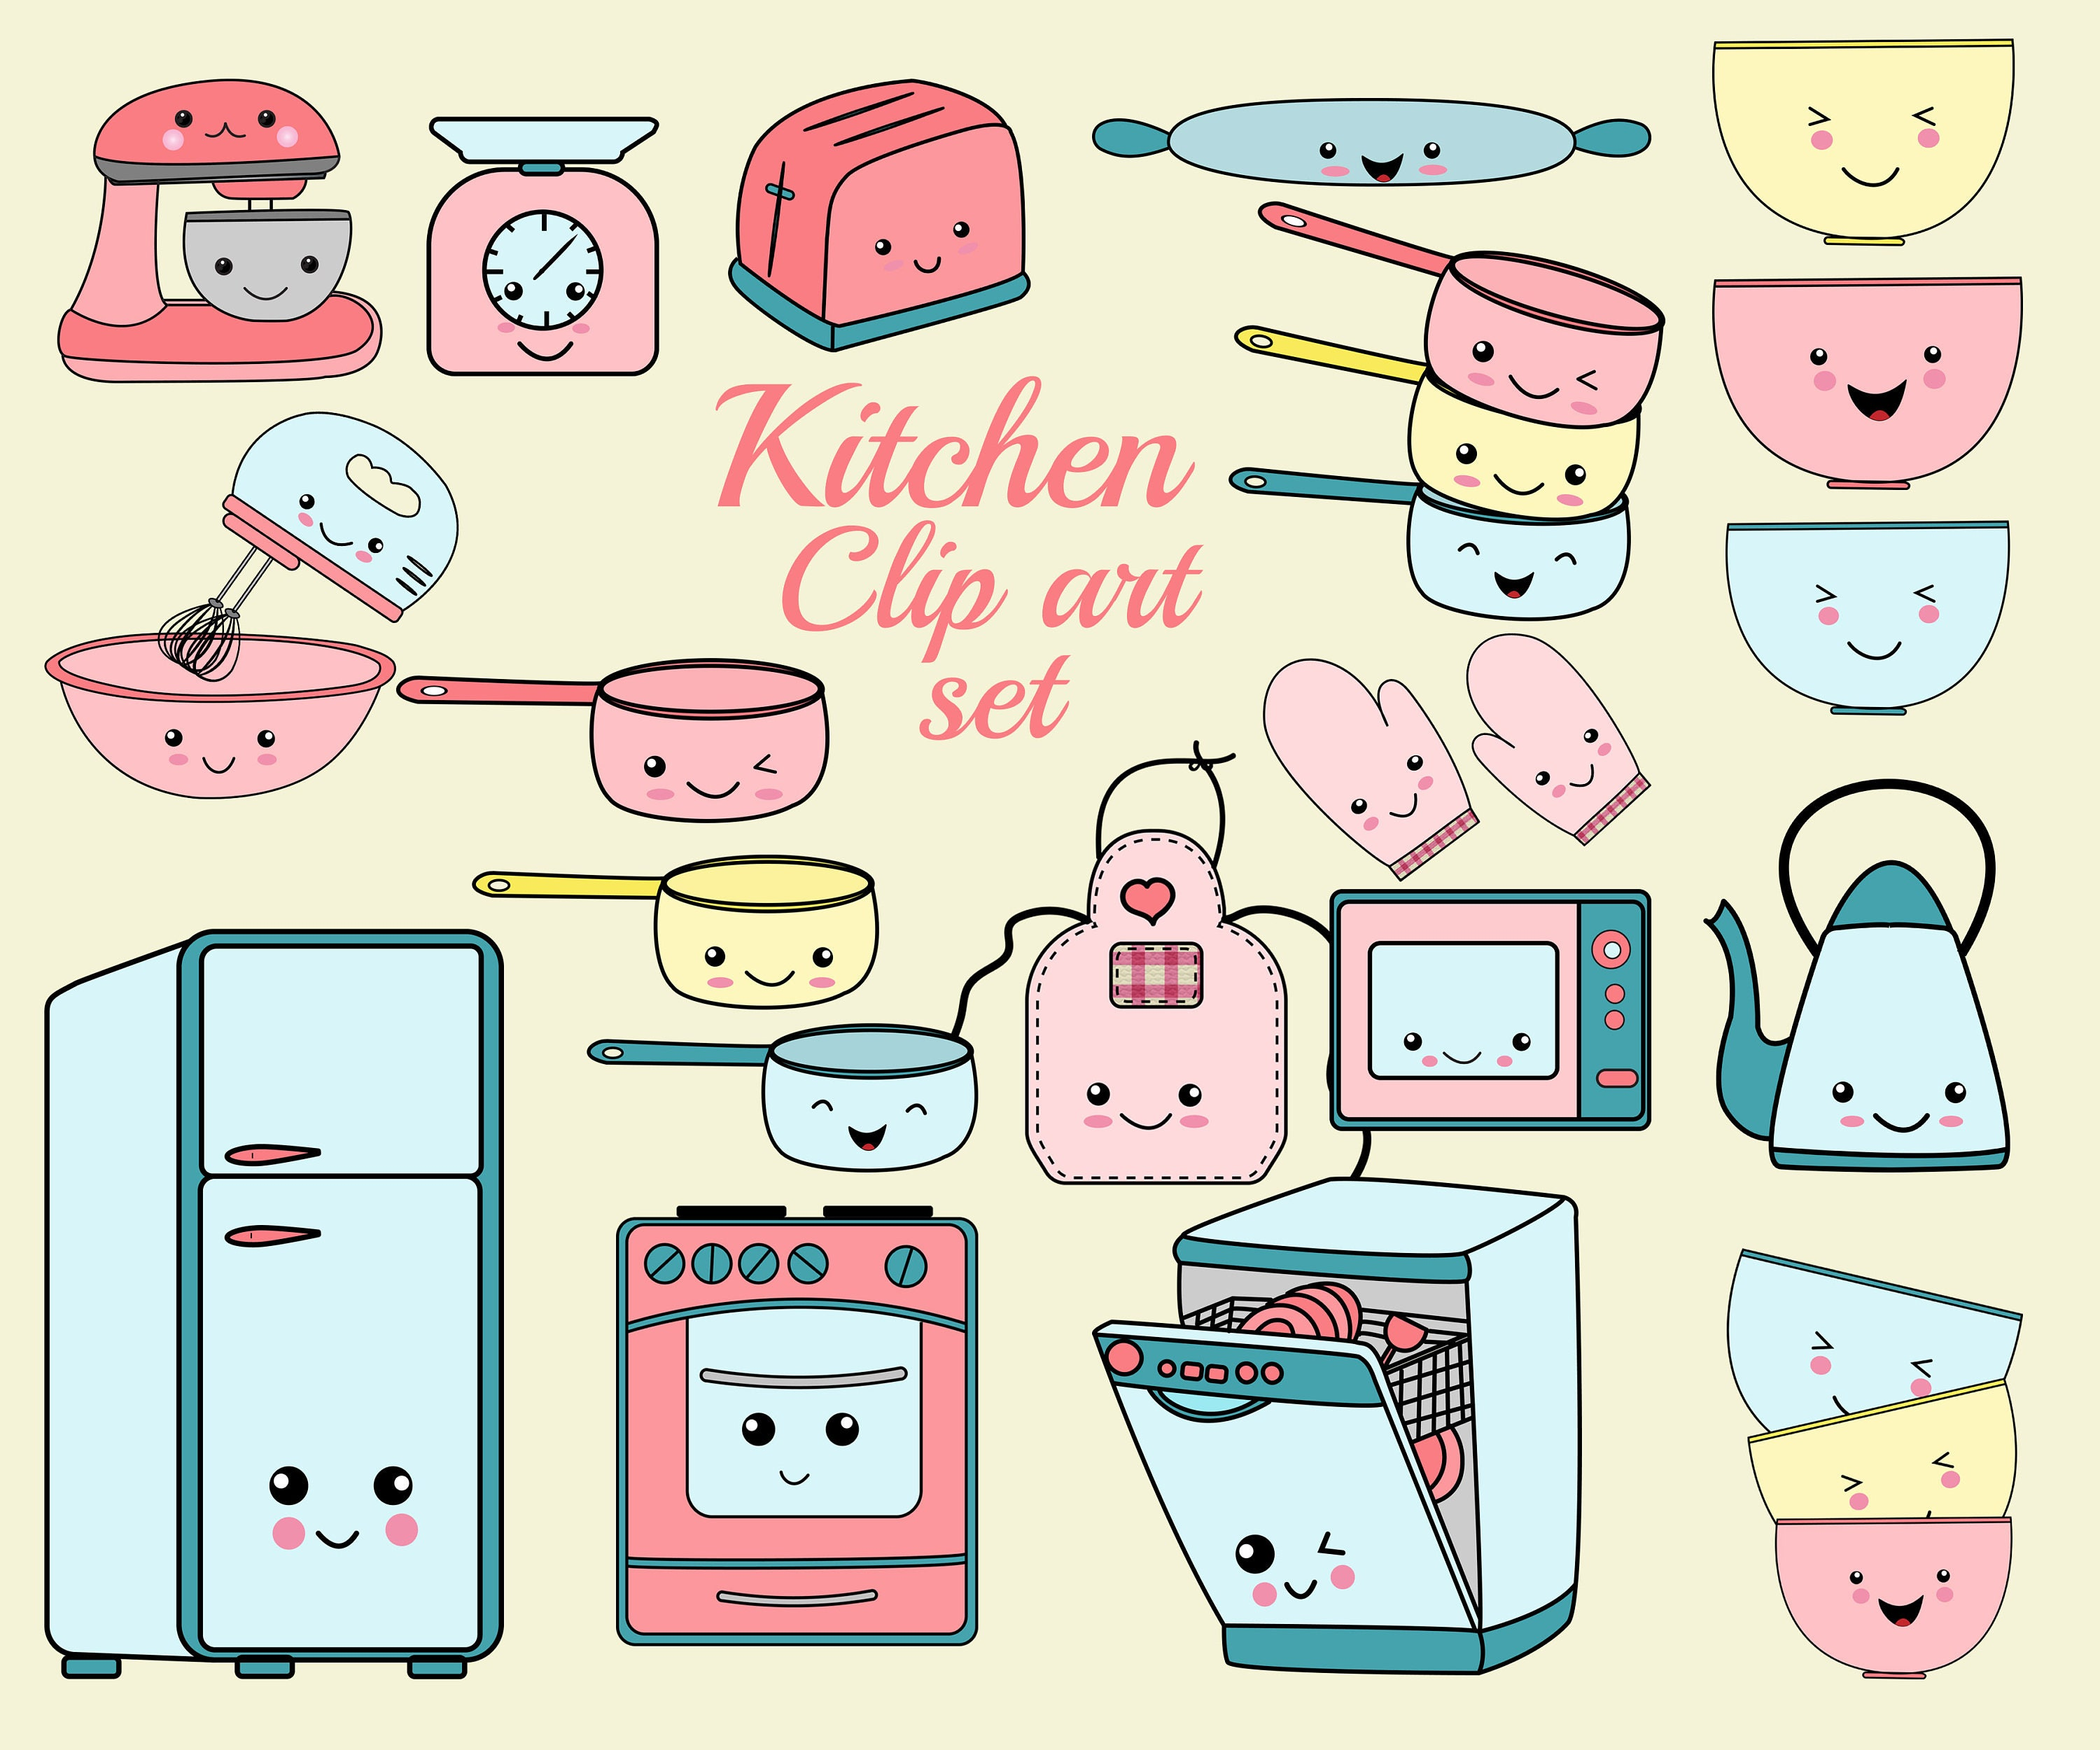 Kawaii Kitchen Clip Art: KITCHEN CLIPART SET